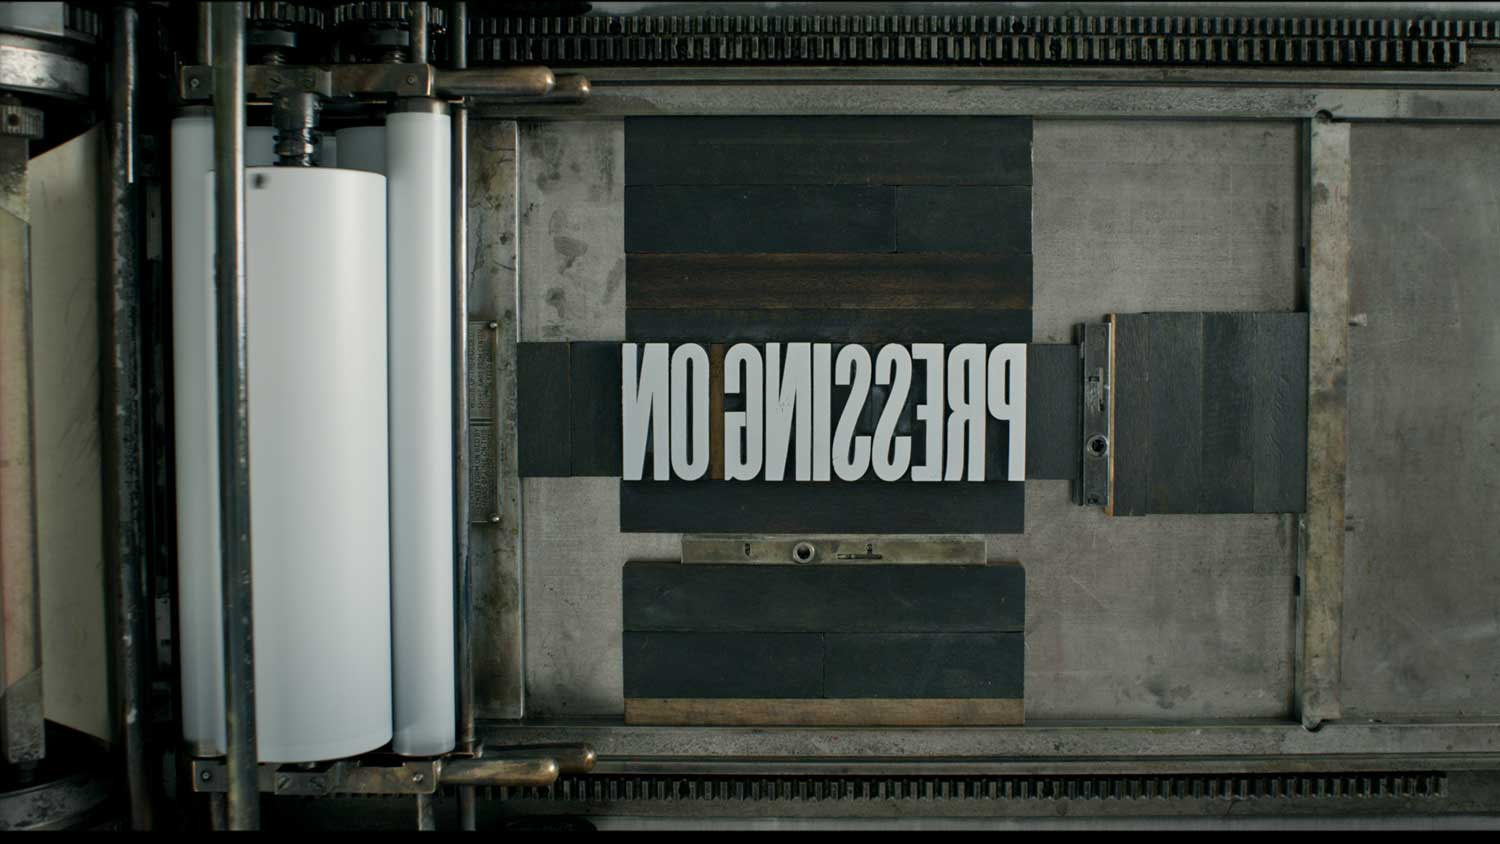 Pressing On: The Letterpress Film Review – Saving The Word - OC Movie Reviews - Movie Reviews, Movie News, Documentary Reviews, Short Films, Short Film Reviews, Trailers, Movie Trailers, Interviews, film reviews, film news, hollywood, indie films, documentaries